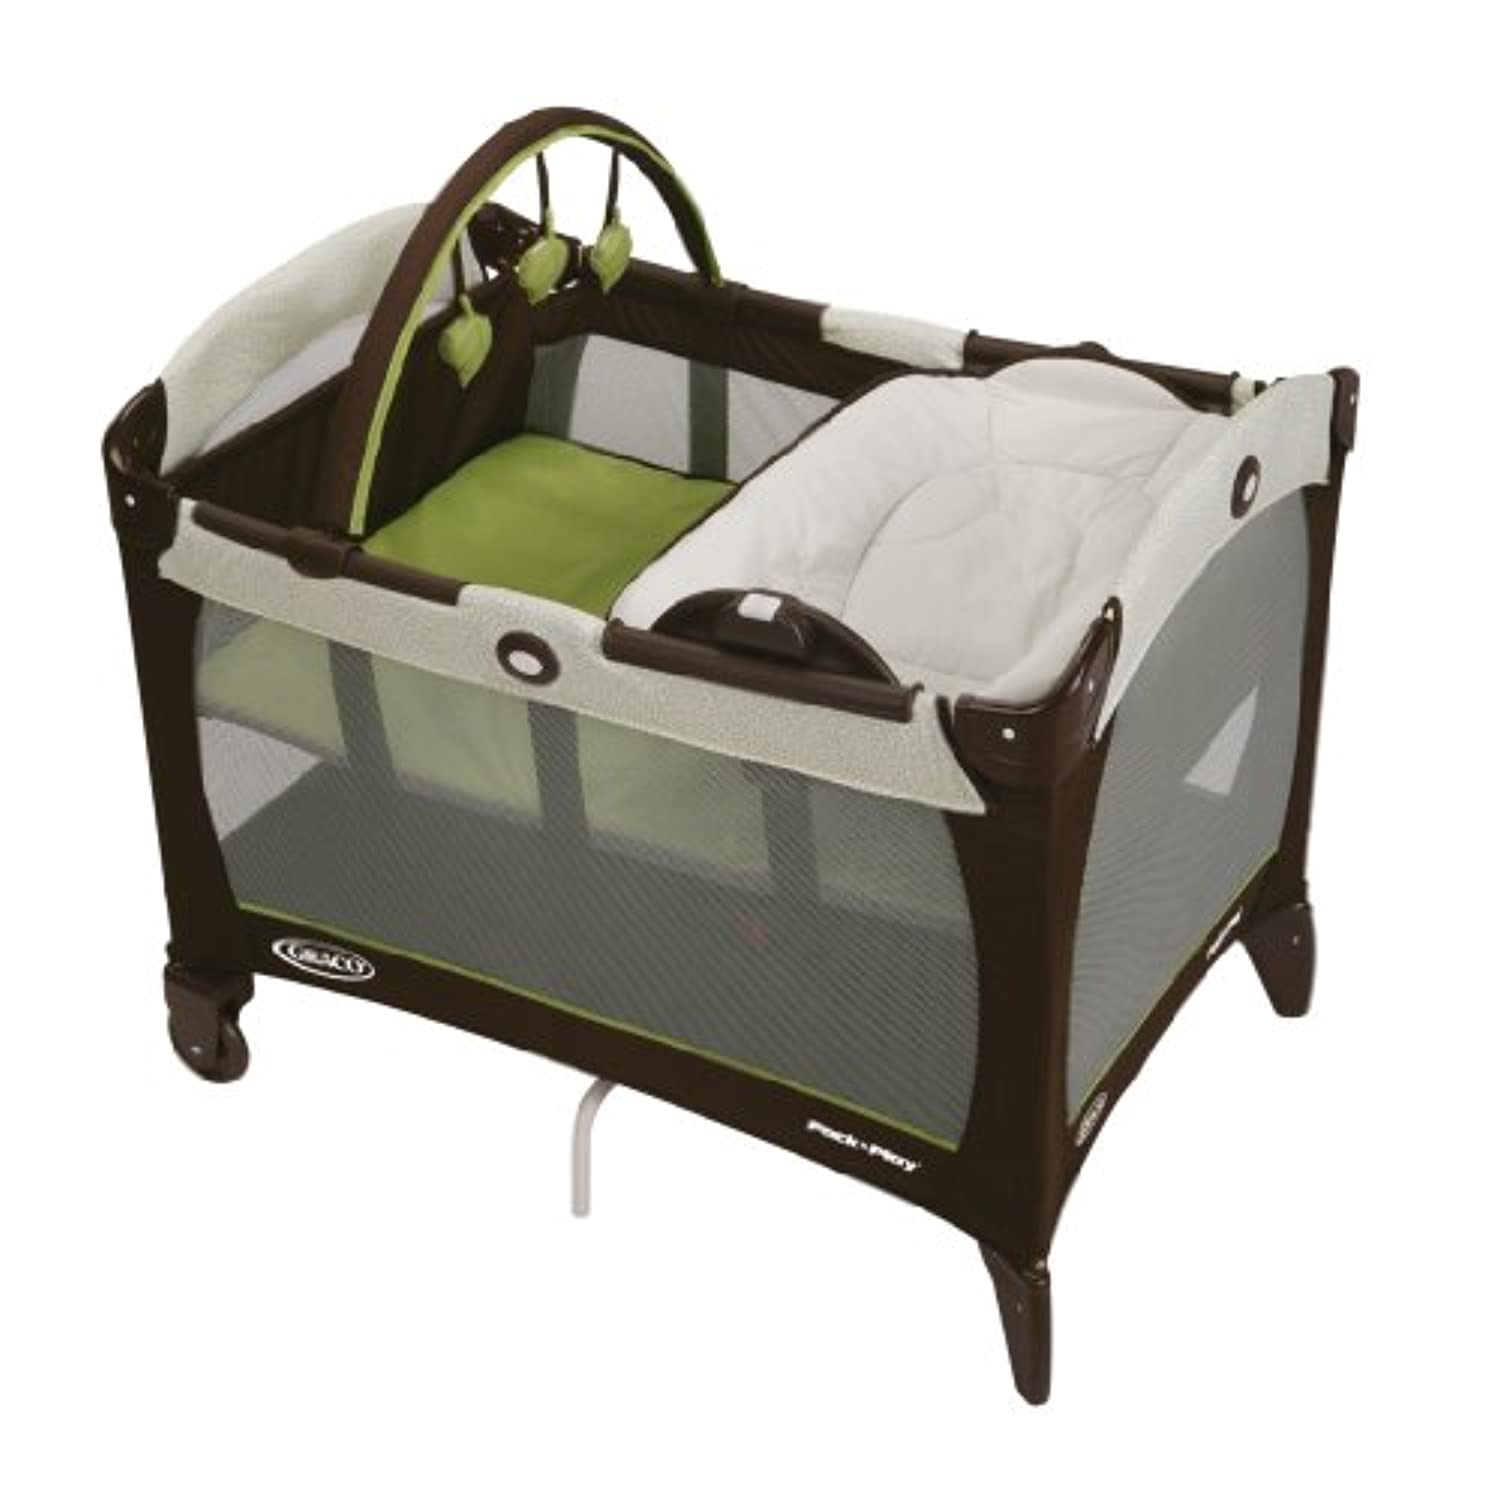 Graco Pack 'n Play Playard with Reversible Napper and Changer, Go Green by Graco [並行輸入品]